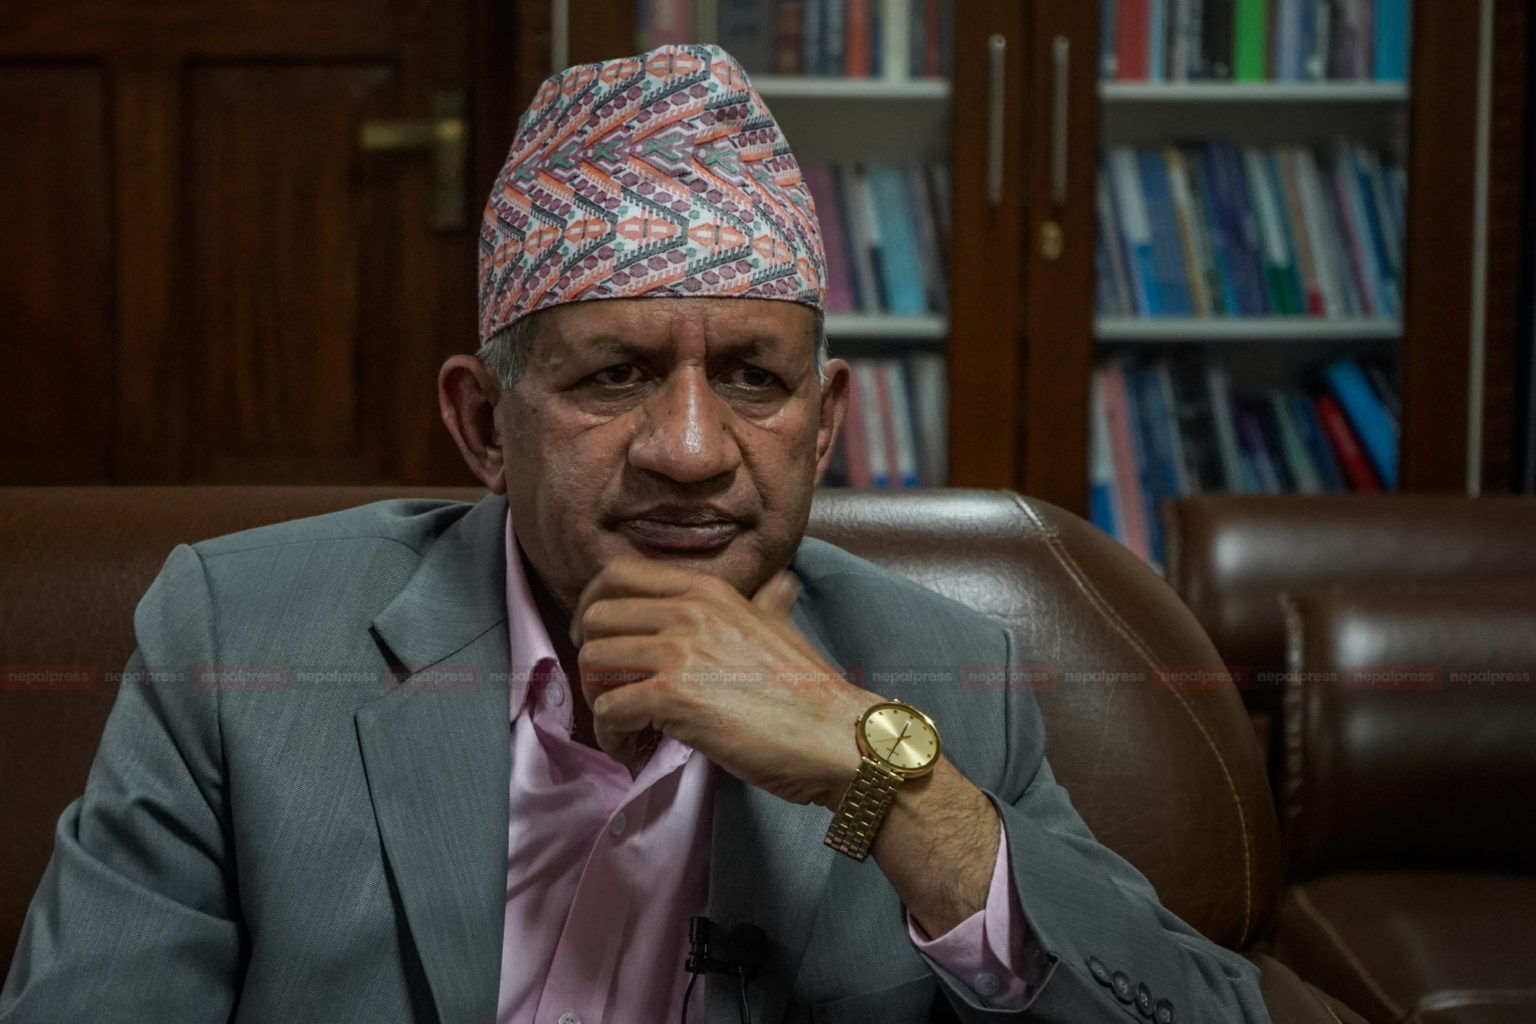 This is the new UML, endless complaints like yesterday shall not be accepted: Pradeep Gyawali